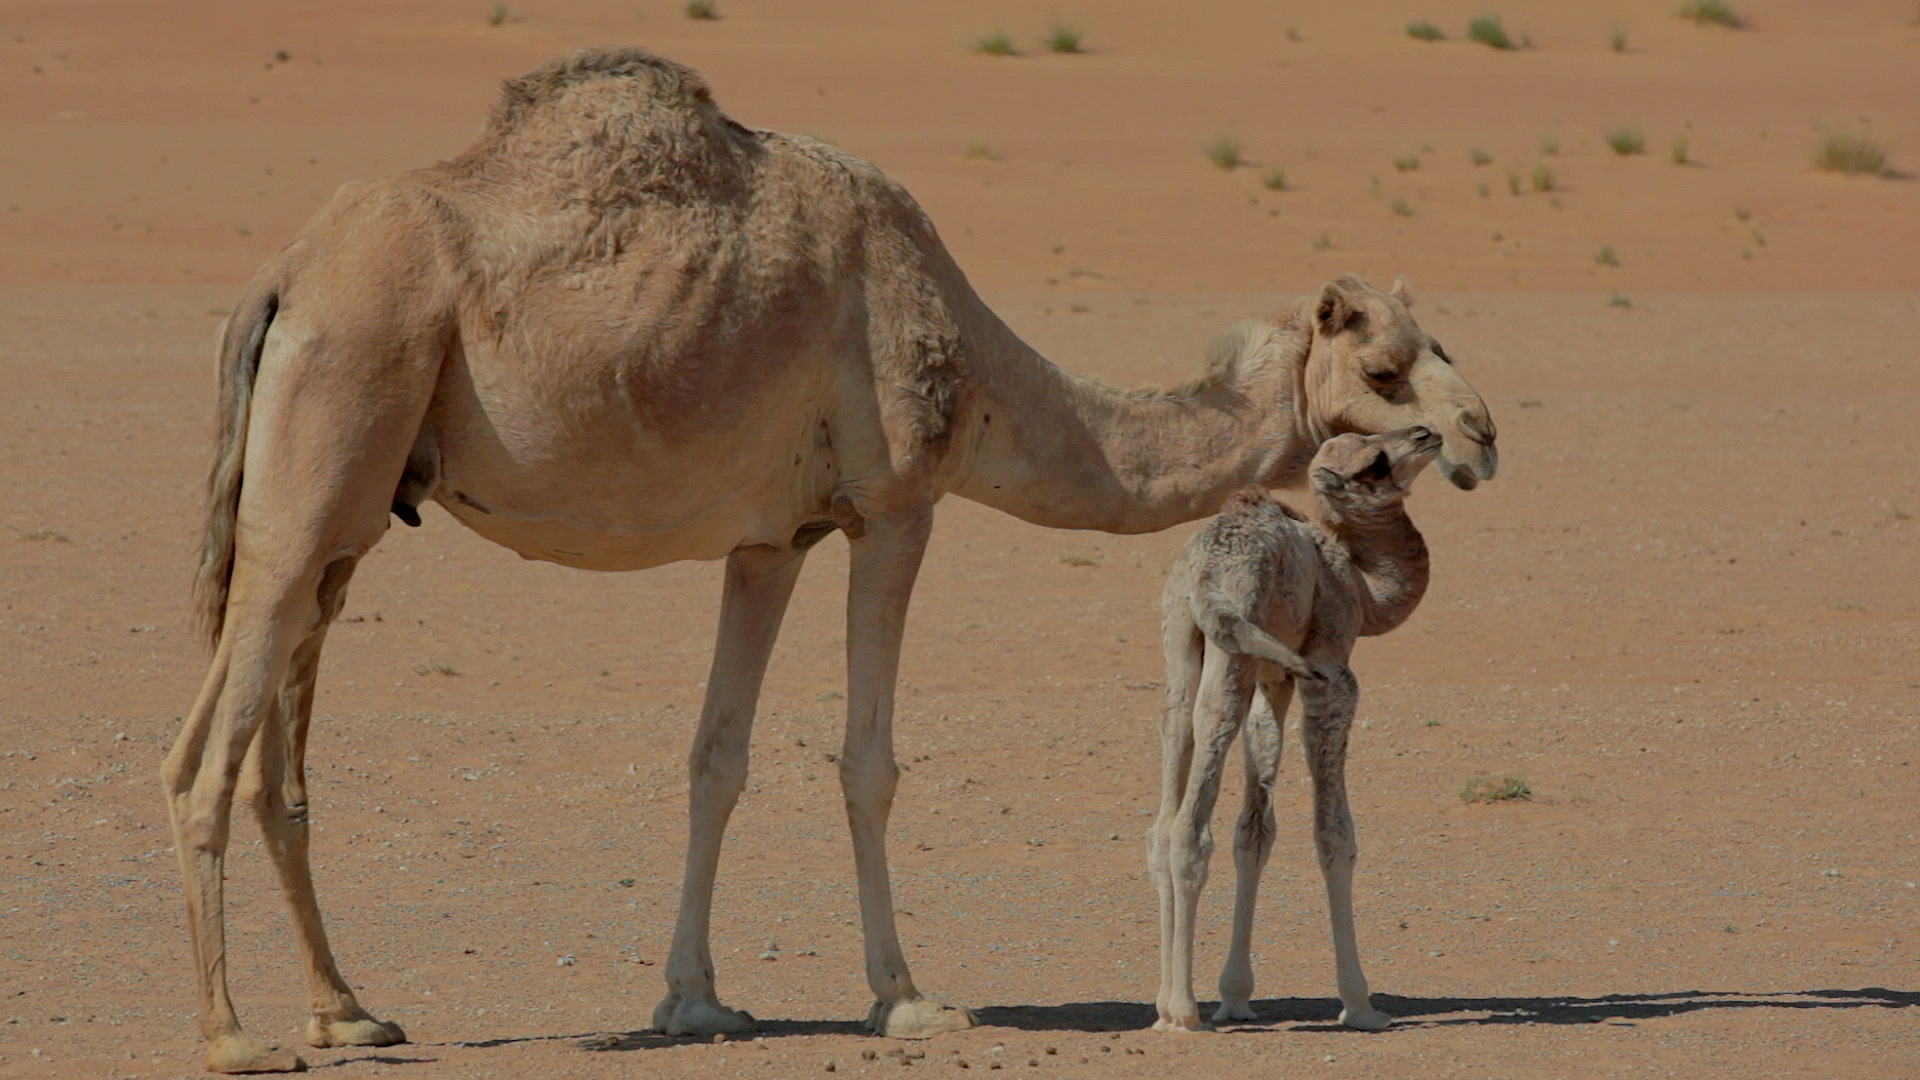 A baby camel and its mother in the Desert